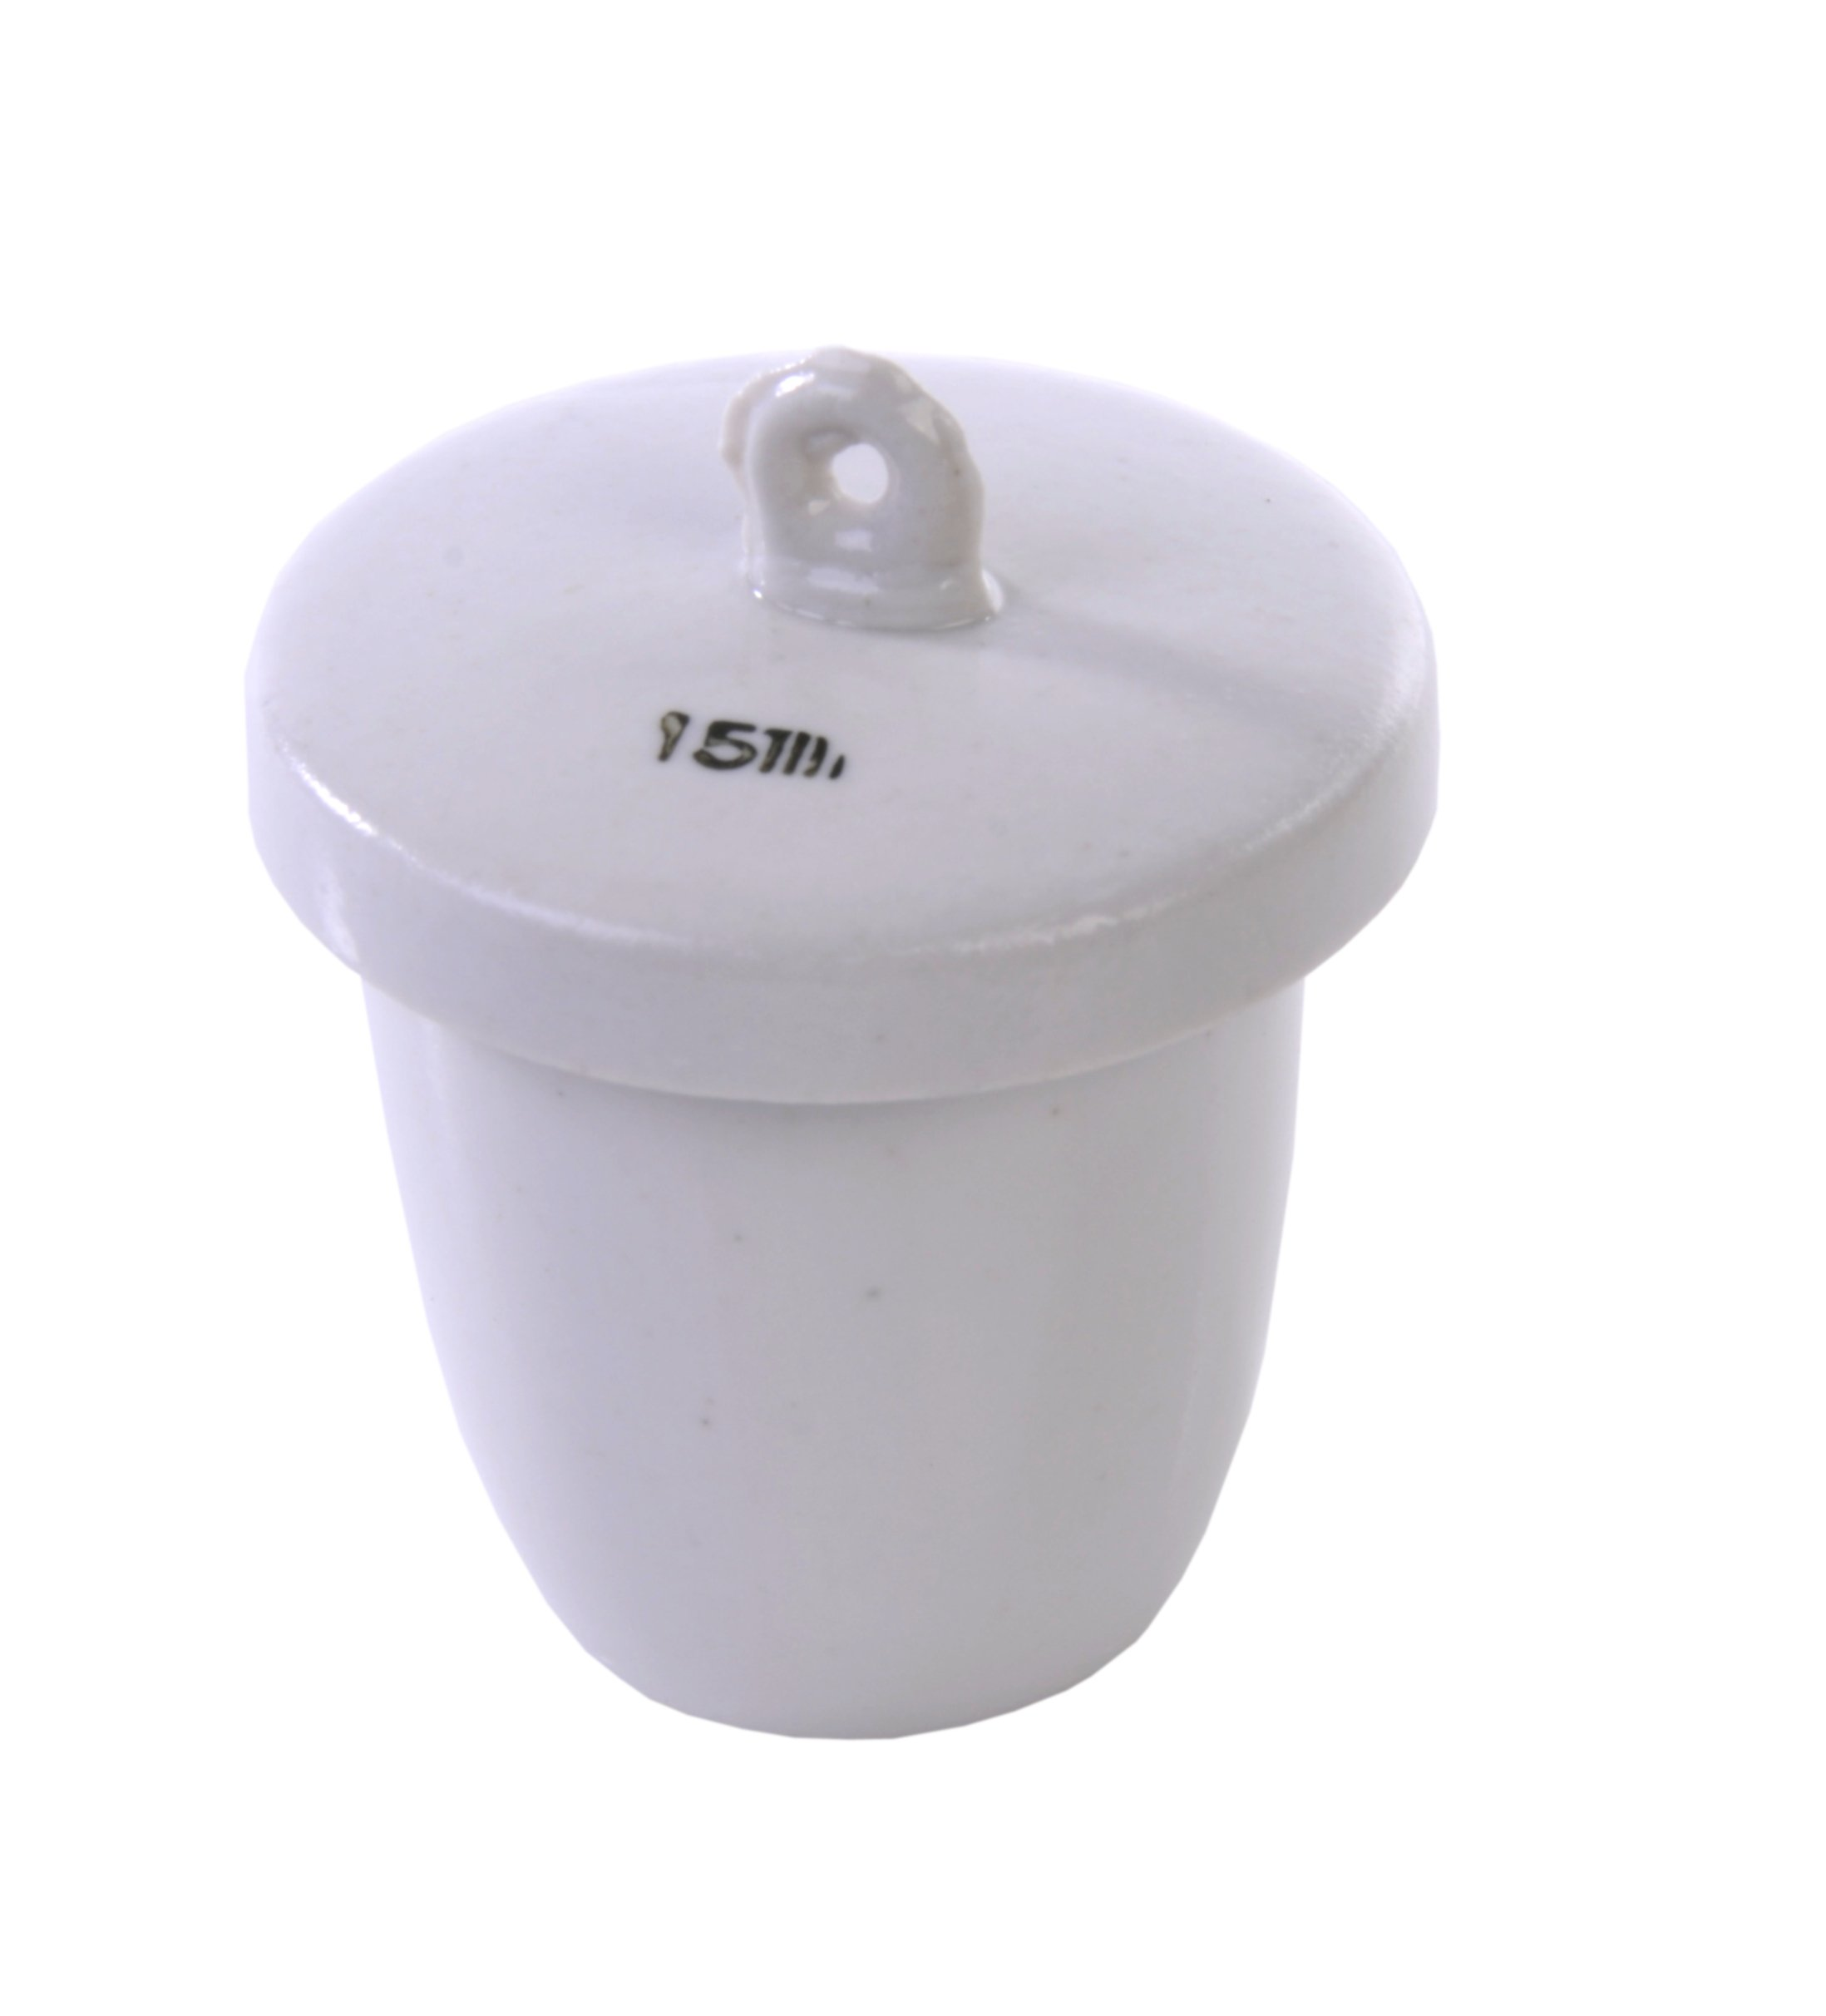 American Educational High Form Porcelain Crucible with Lid, 15mL Capacity (Bundle of 10)